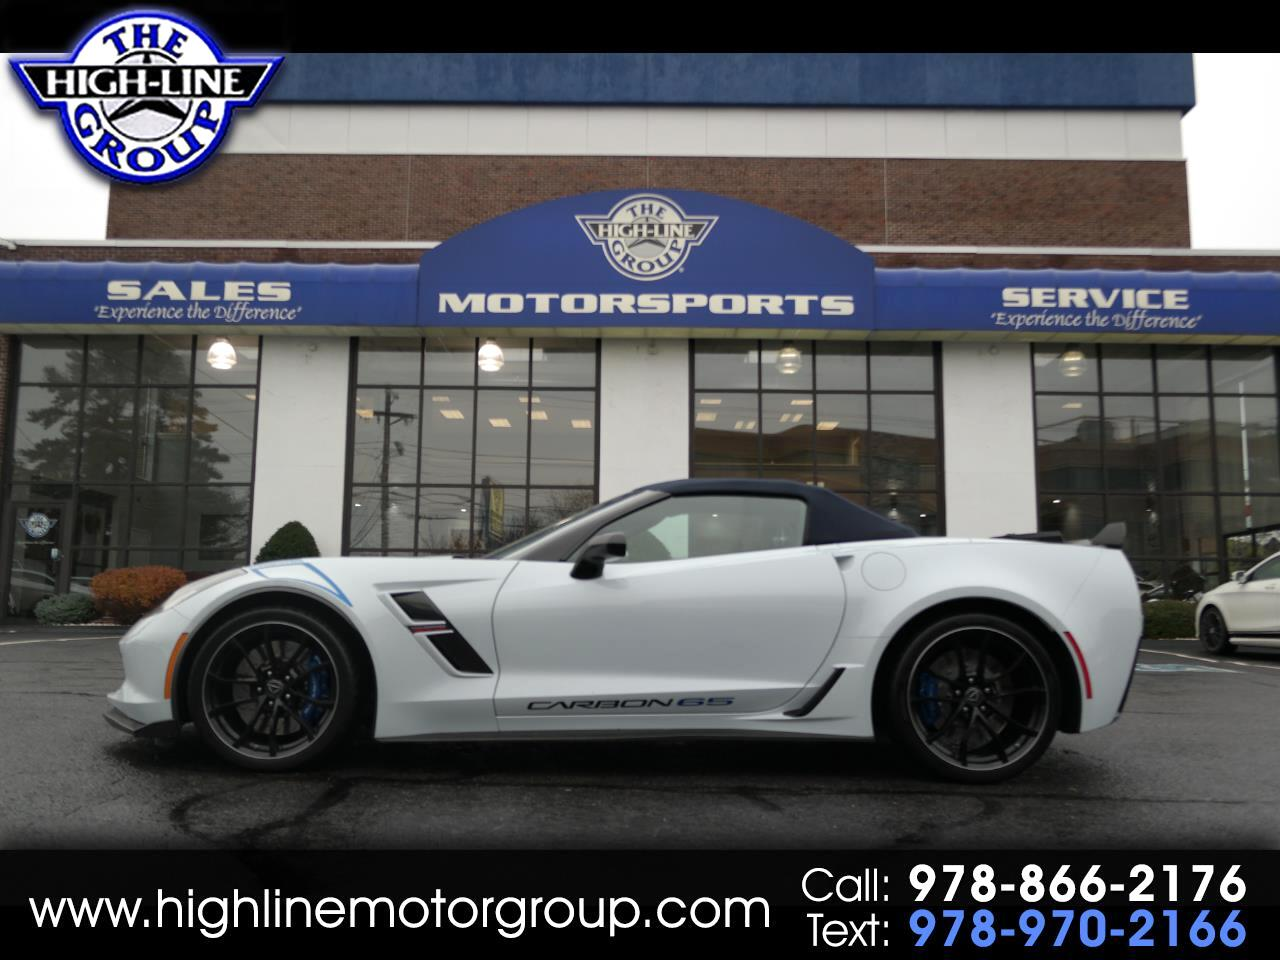 2018 Chevrolet Corvette GRAND SPORT 3/LT CONVERTIBLE CARBON 65 EDITION